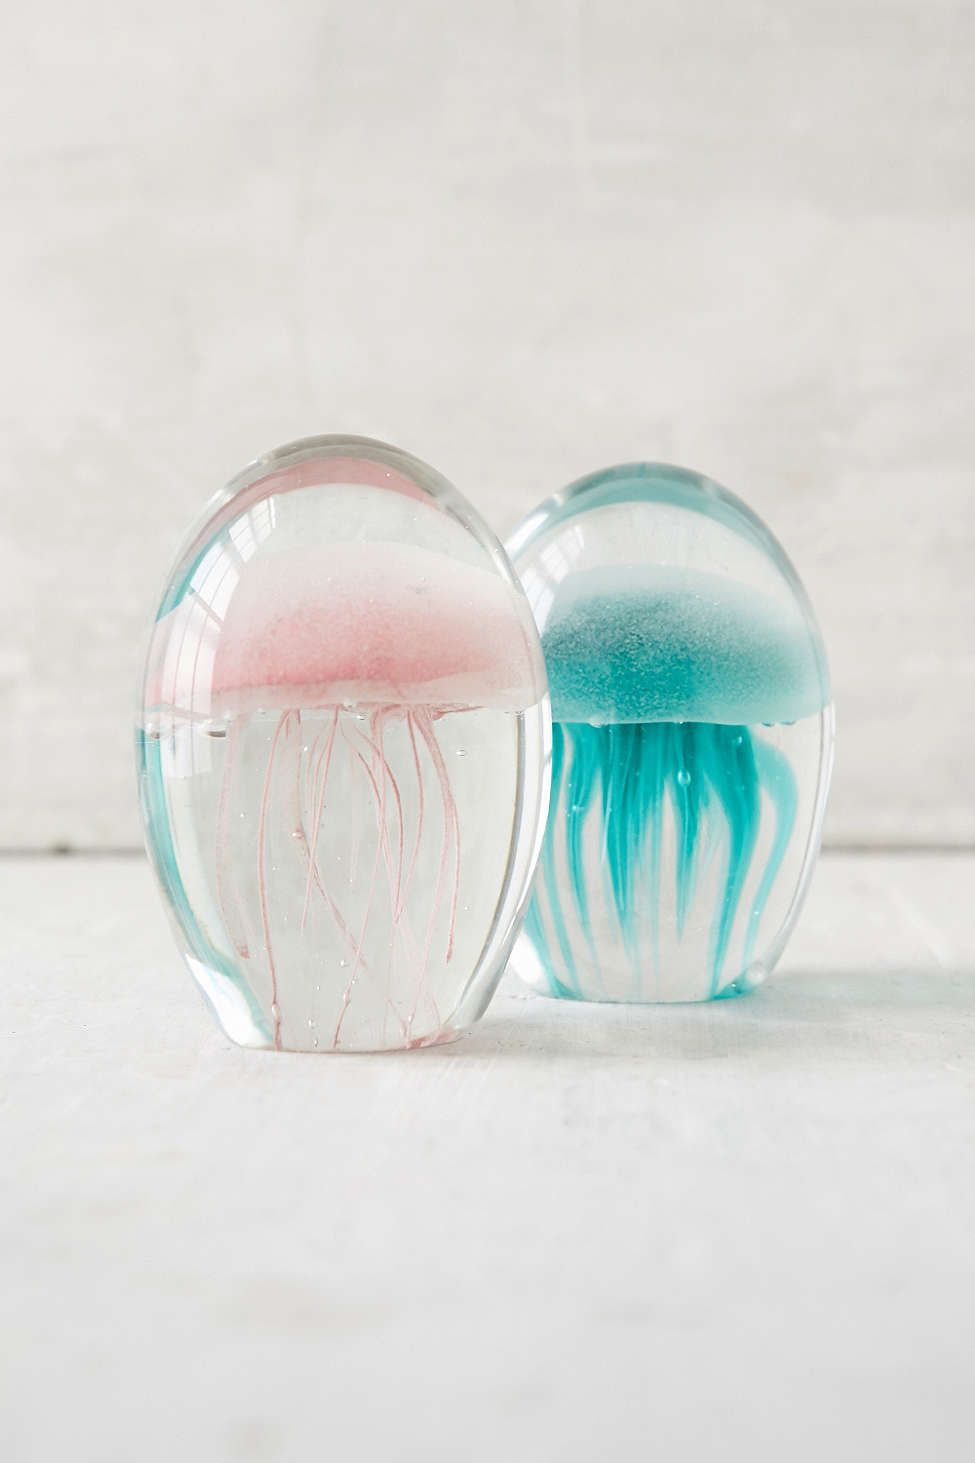 Glow-In-The-Dark Glass Jellyfish Decor | Awesome stuff, Spaces and ...